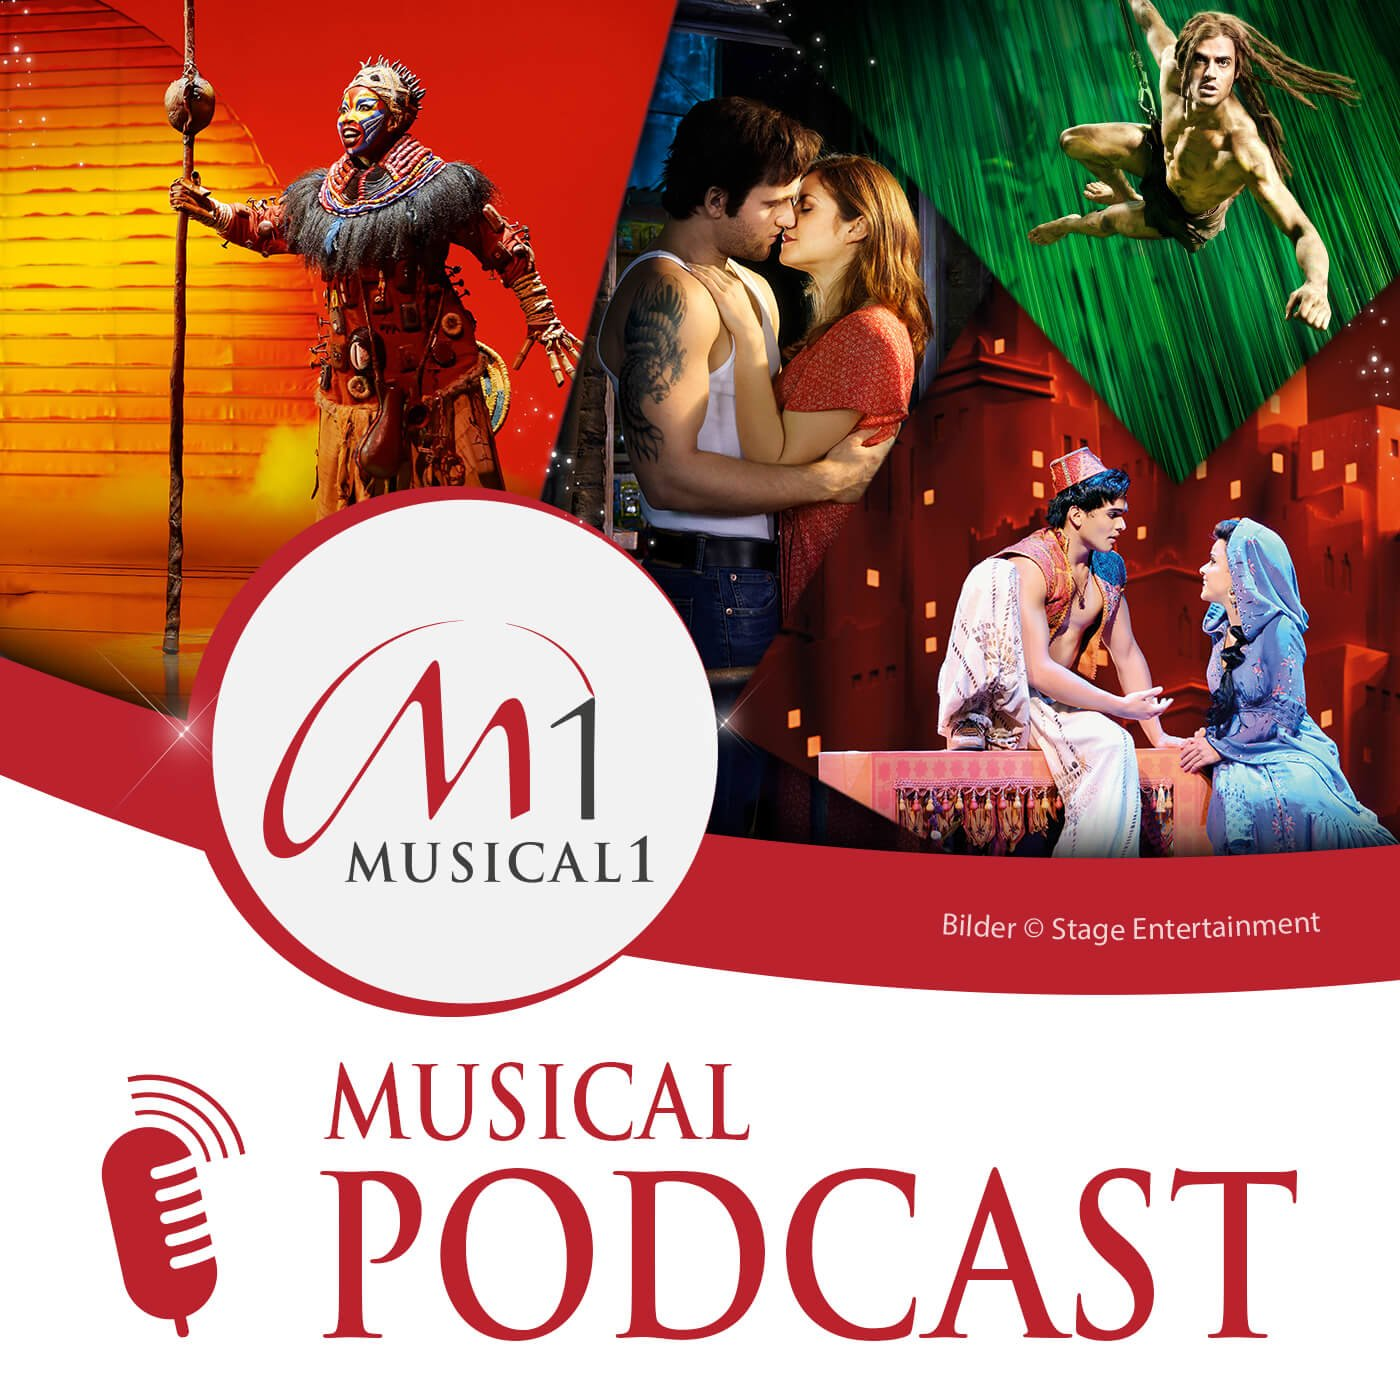 Musical1 - Musical Podcast